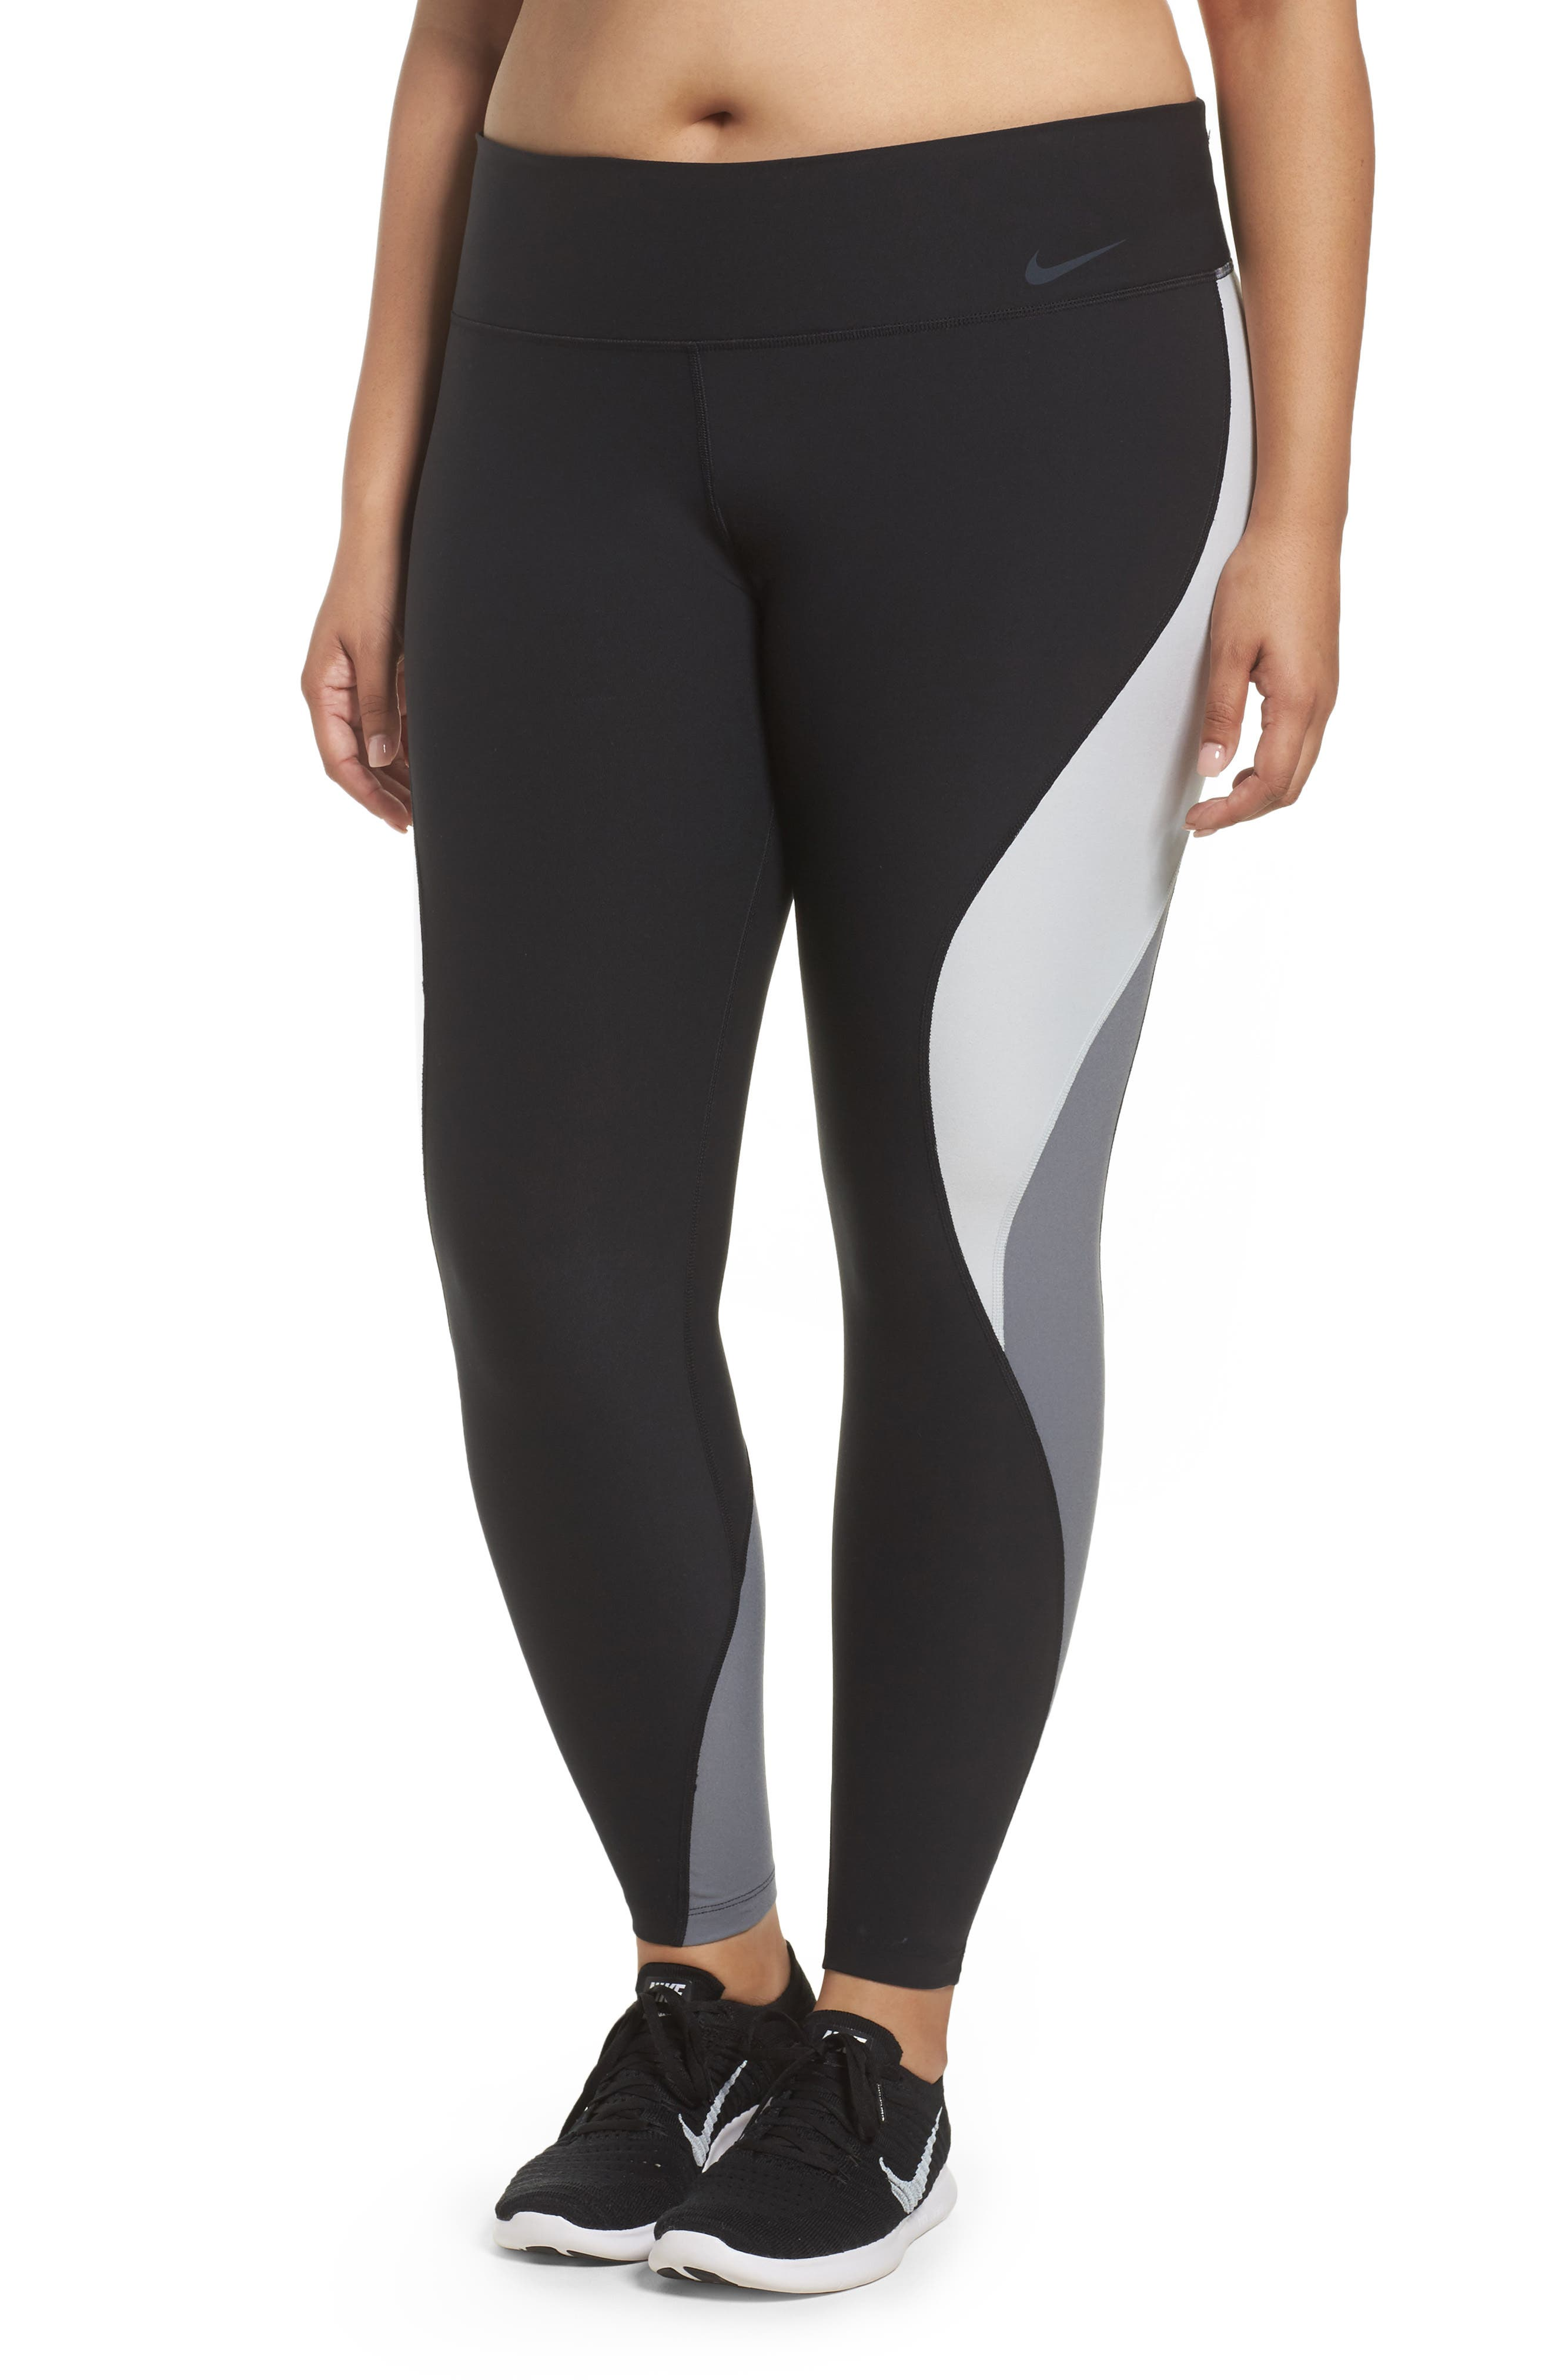 Power Legend Training Tights,                             Main thumbnail 1, color,                             Black/ Platinum/ Grey